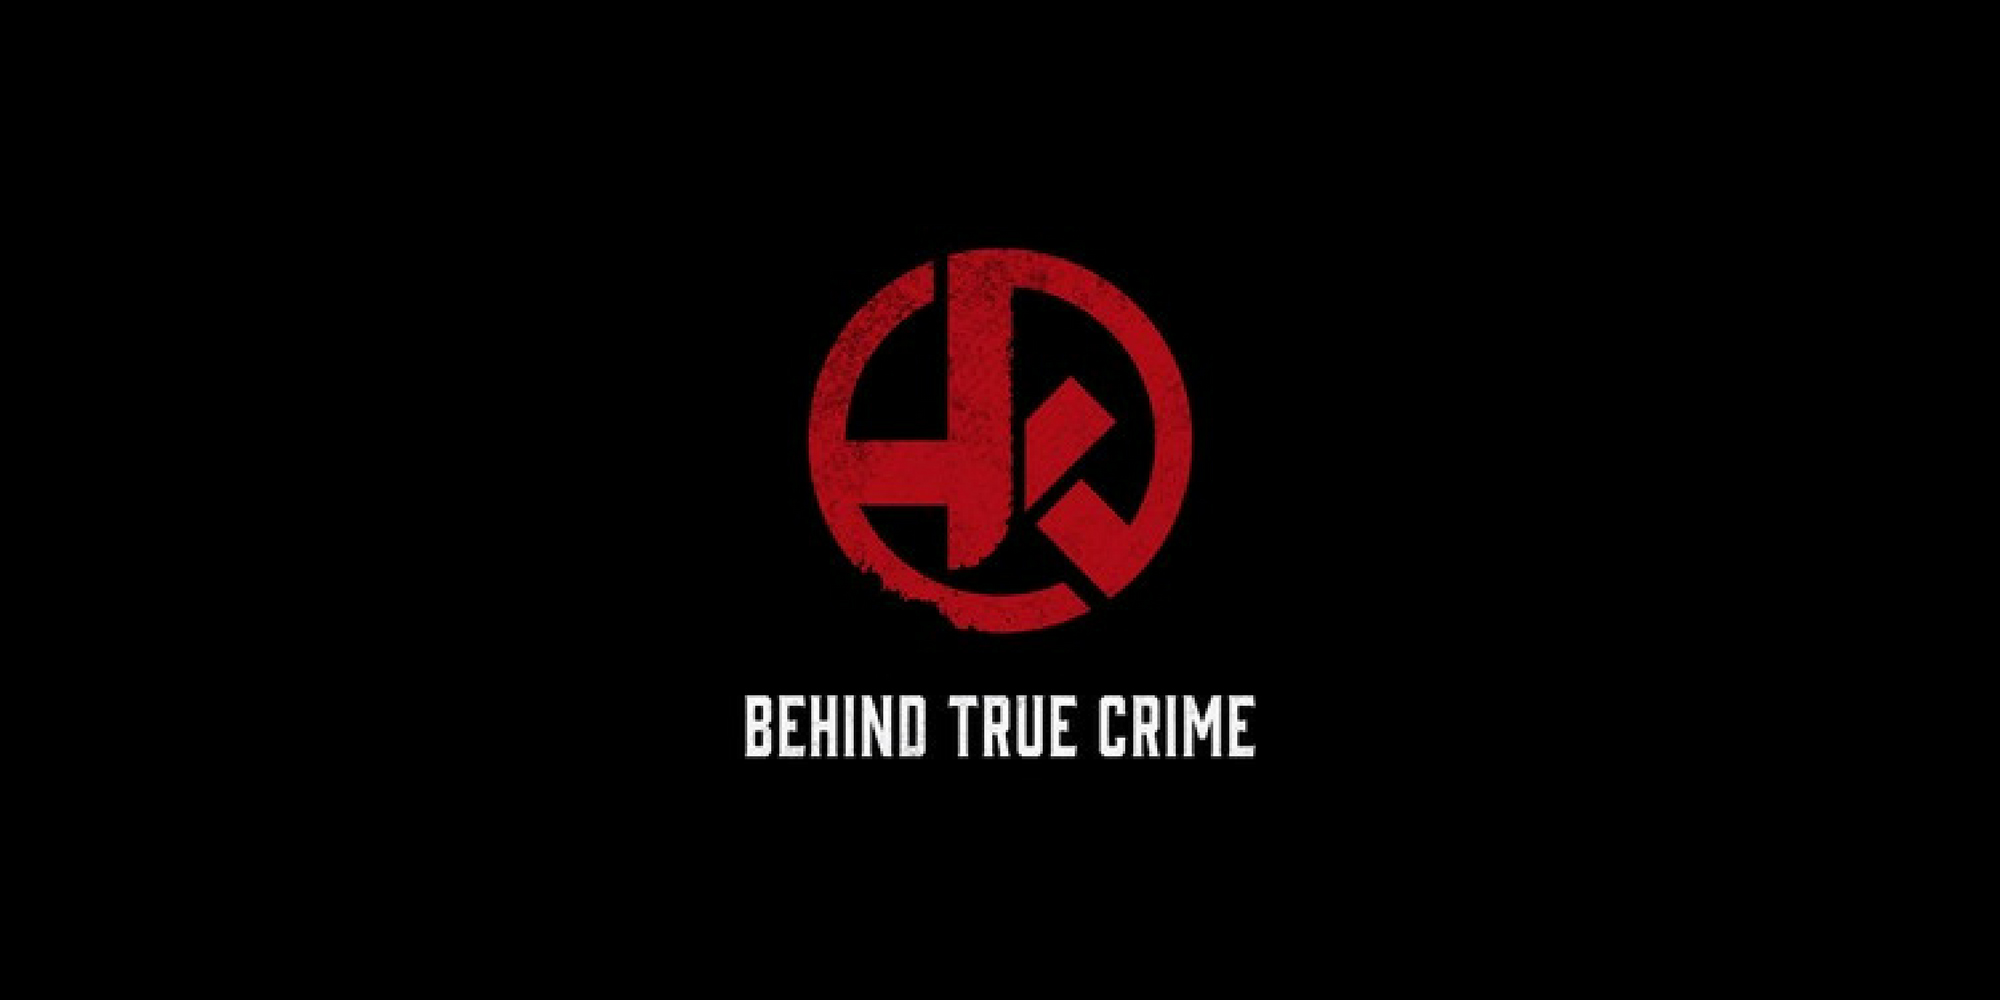 Behind+true+crime+resize+v2.jpg